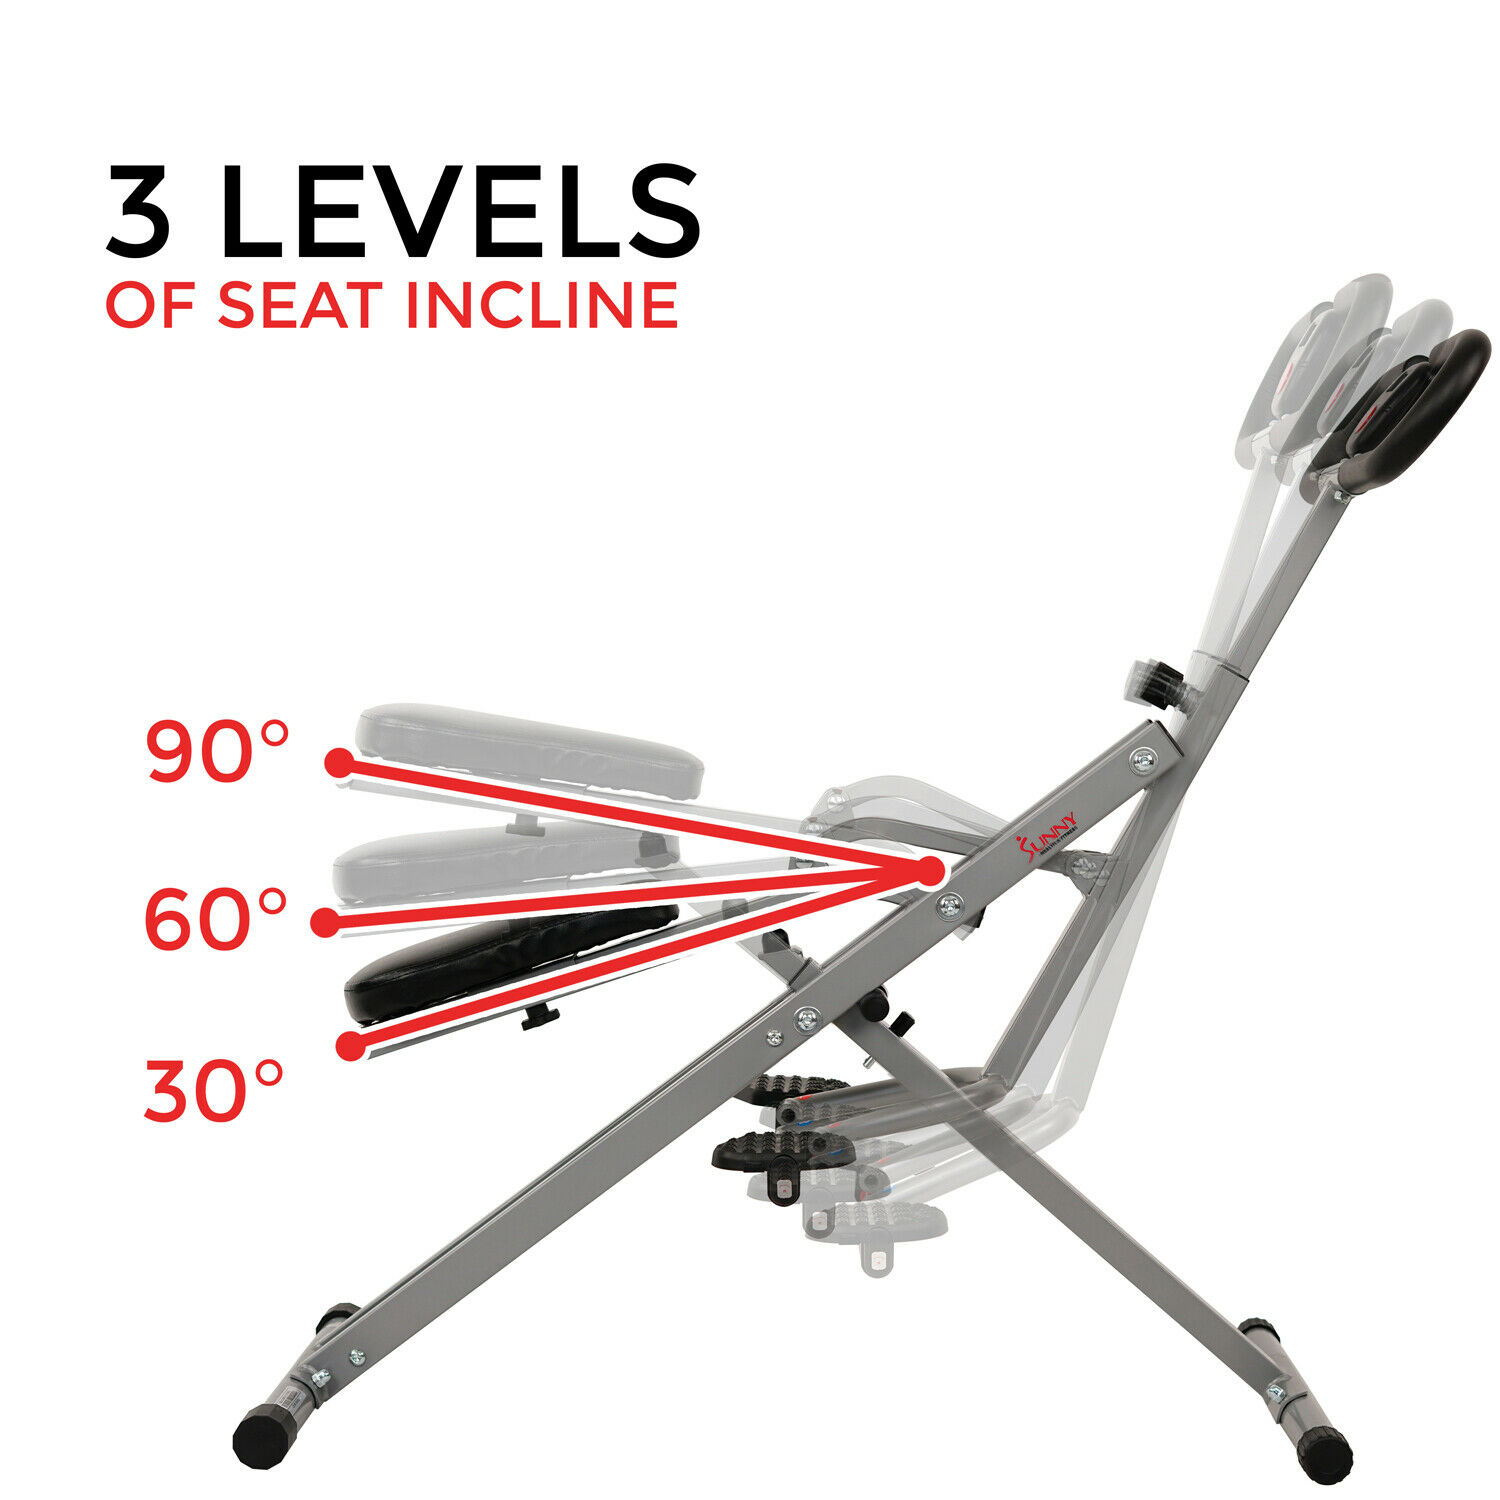 Sunny Health and Fitness Upright Squat Assist Row-N-Ride Trainer for Squat Exerc 11